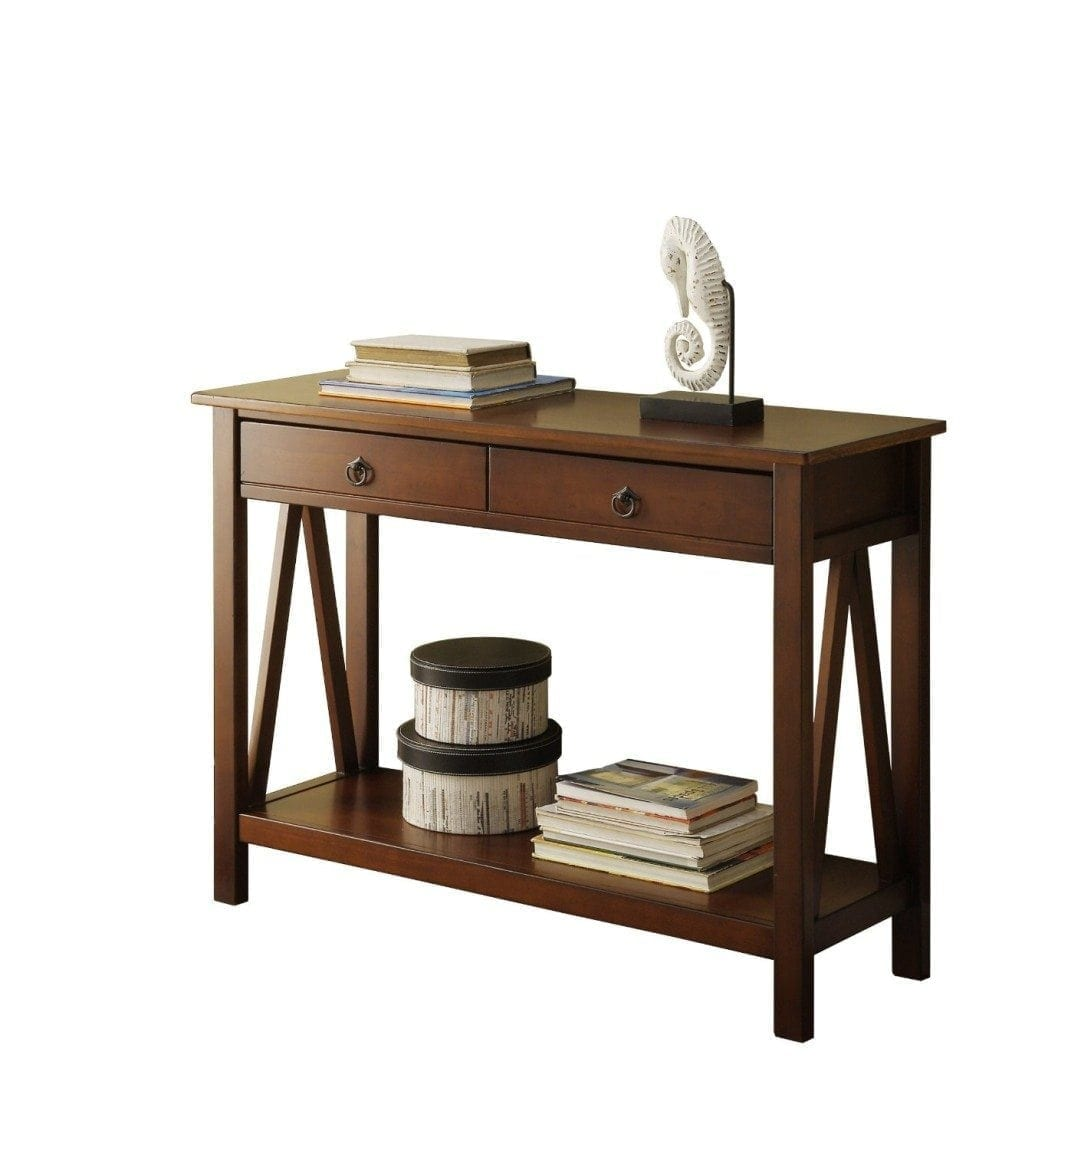 Linon Home Decor Titian Antique Console Table